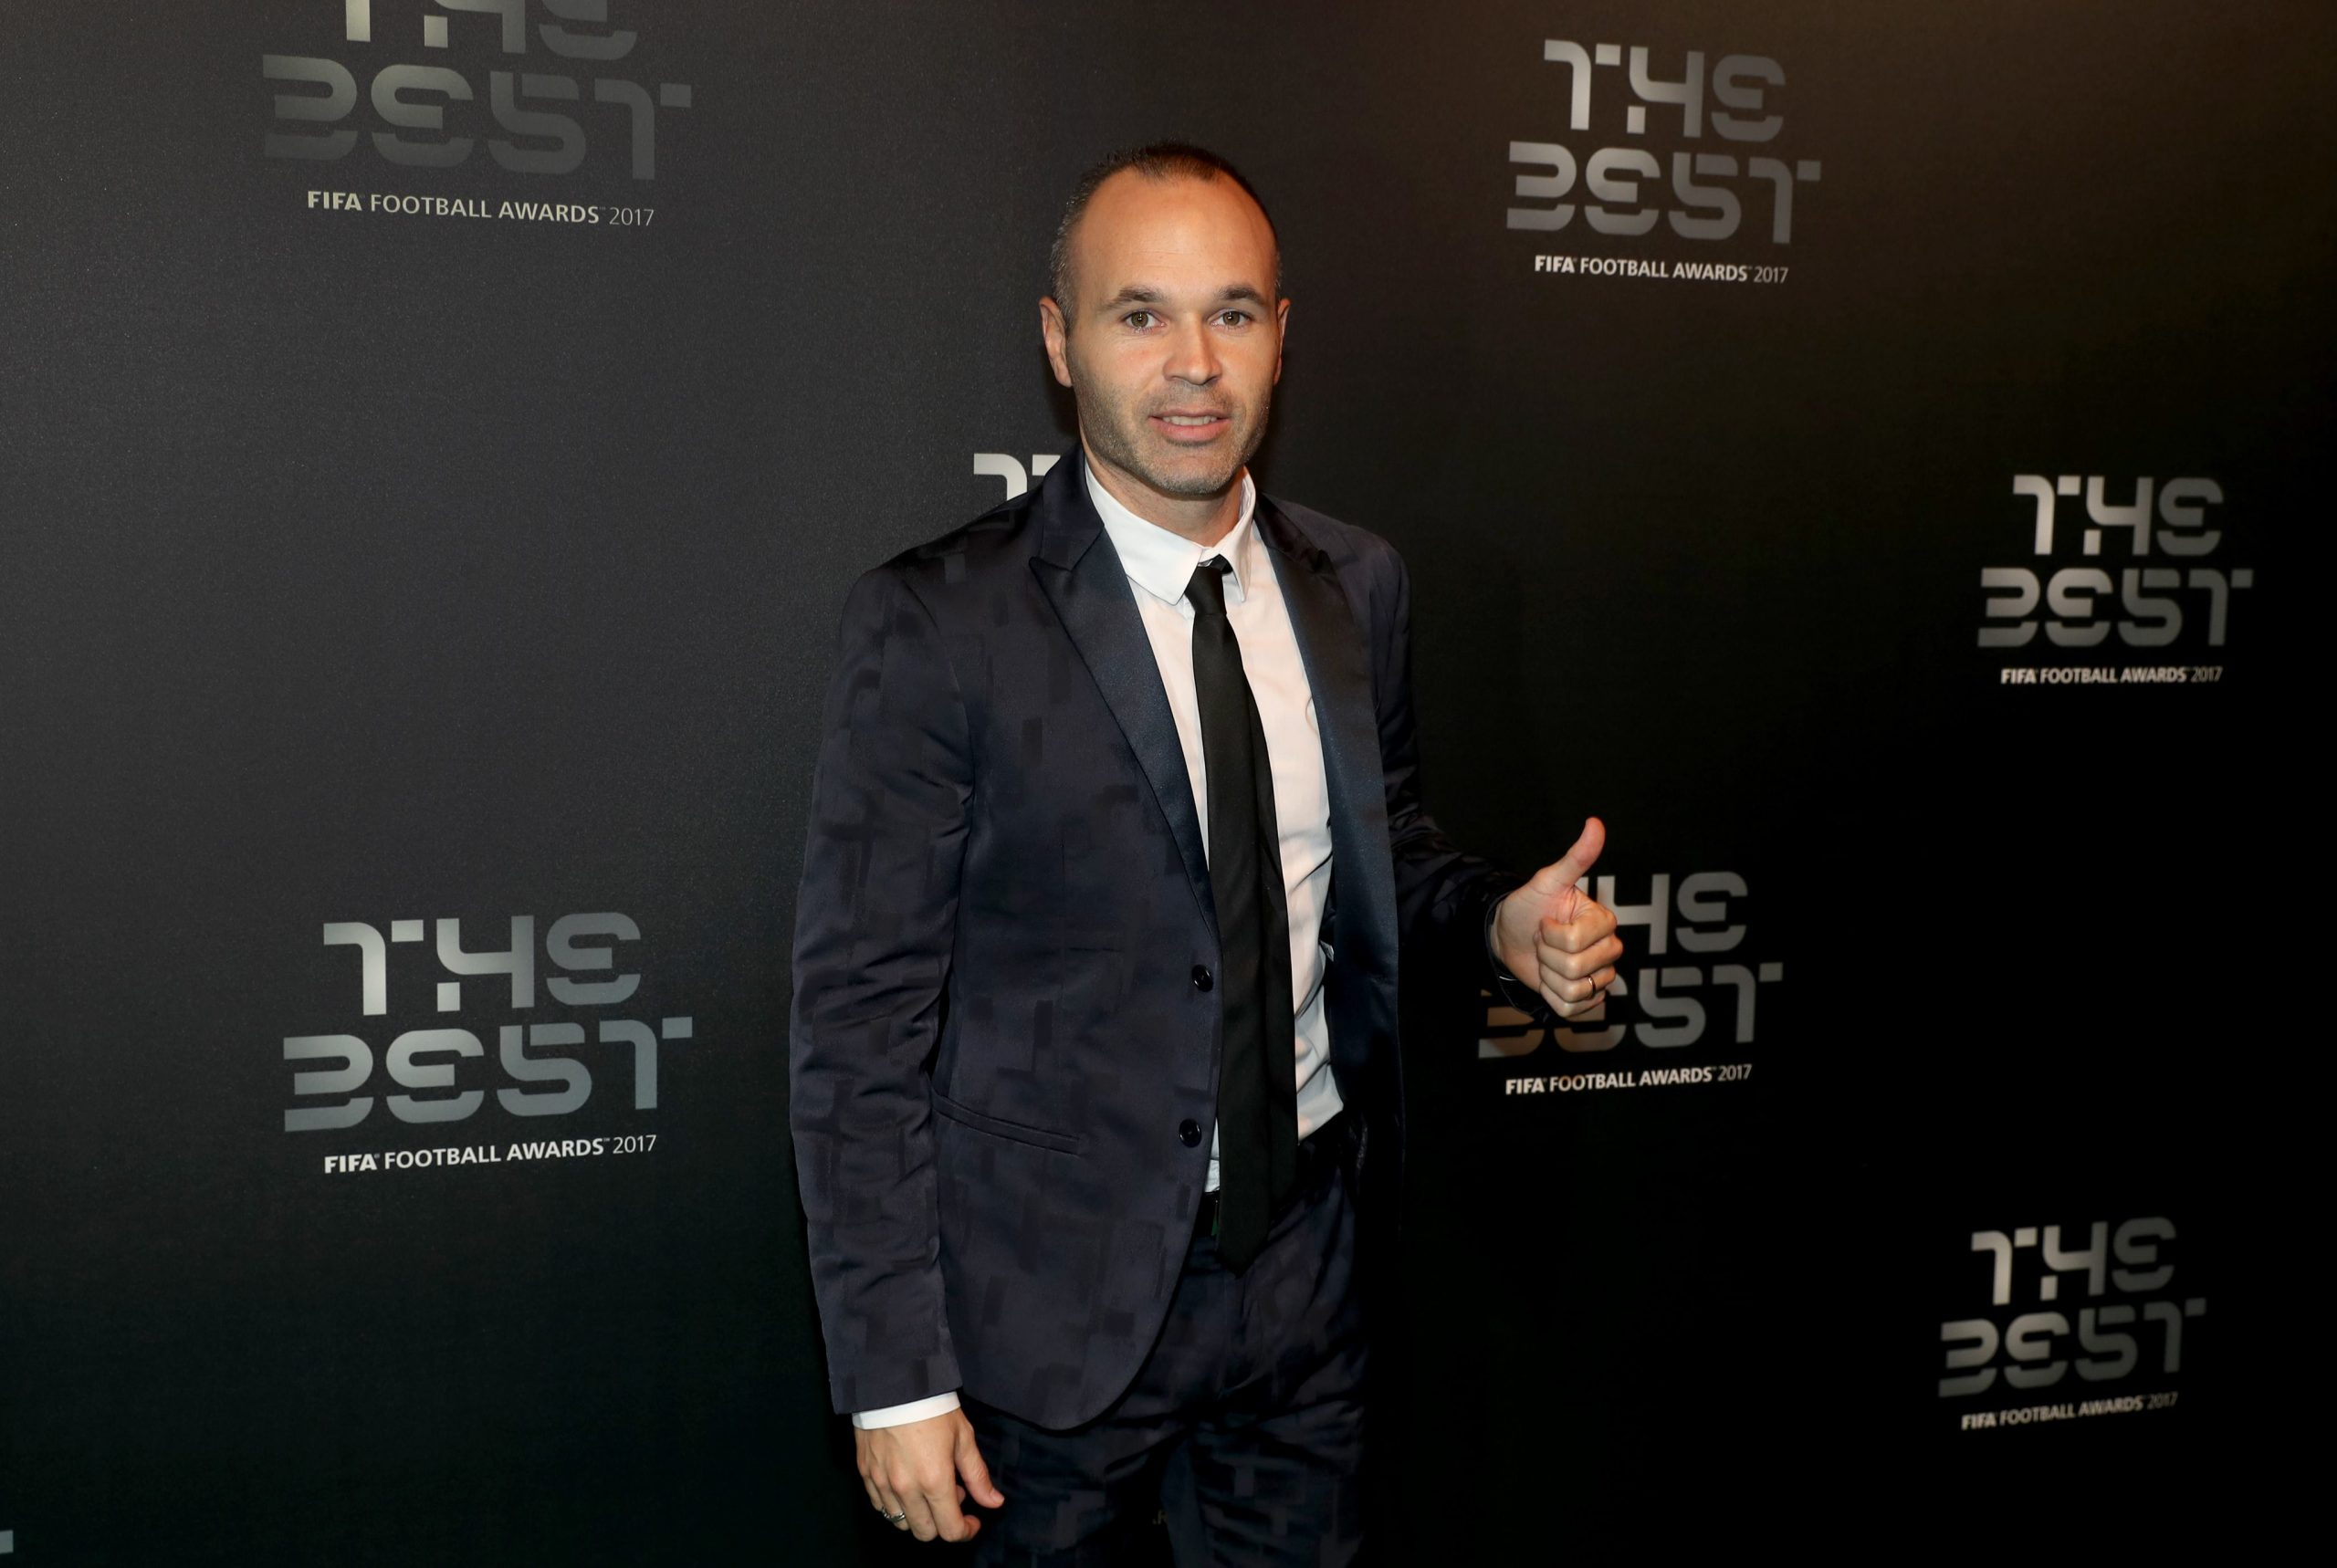 Andres Iniesta Has An Insane Offer On The Table To Leave Barcelona